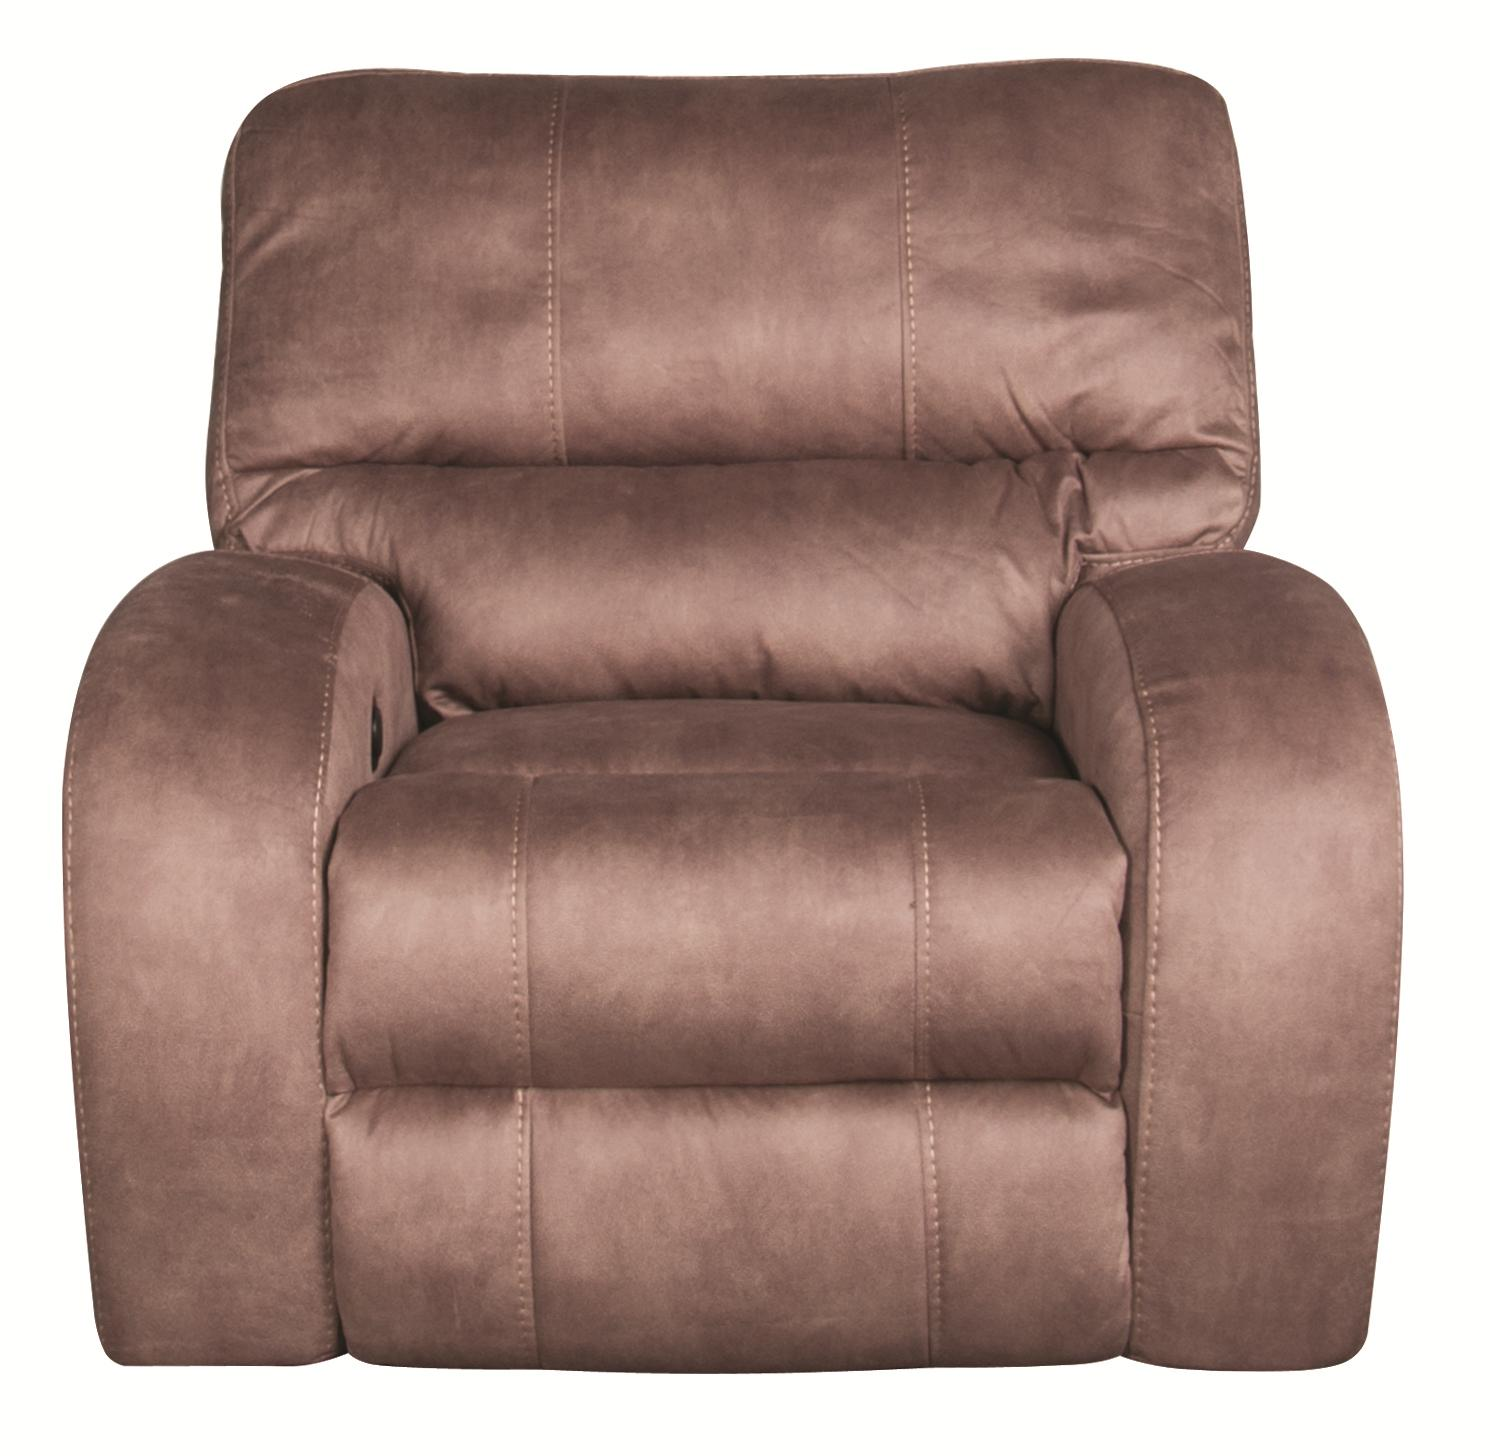 Morris Home Furnishings Caiden Caiden Power Recliner - Item Number: 108849906